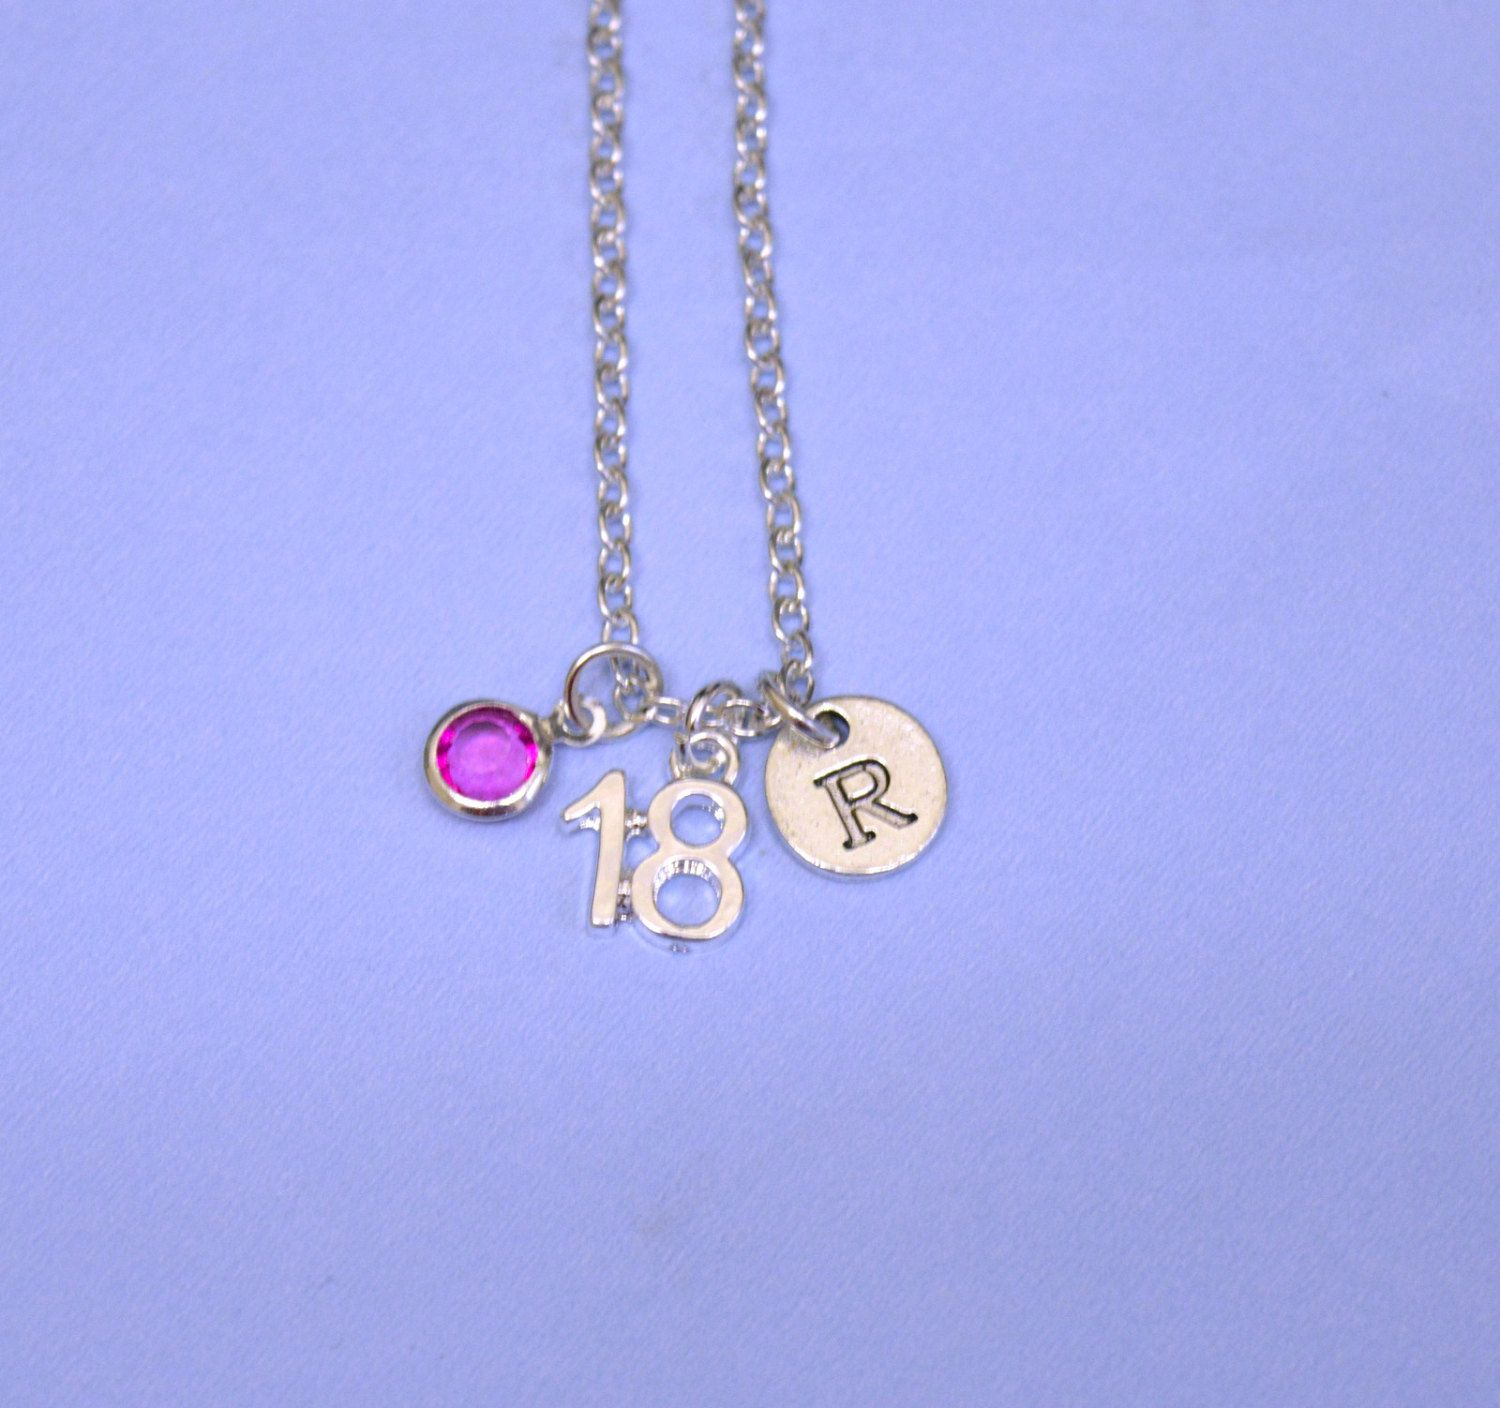 18th Birthday Gift, 18th Birthday Necklace Jewelry